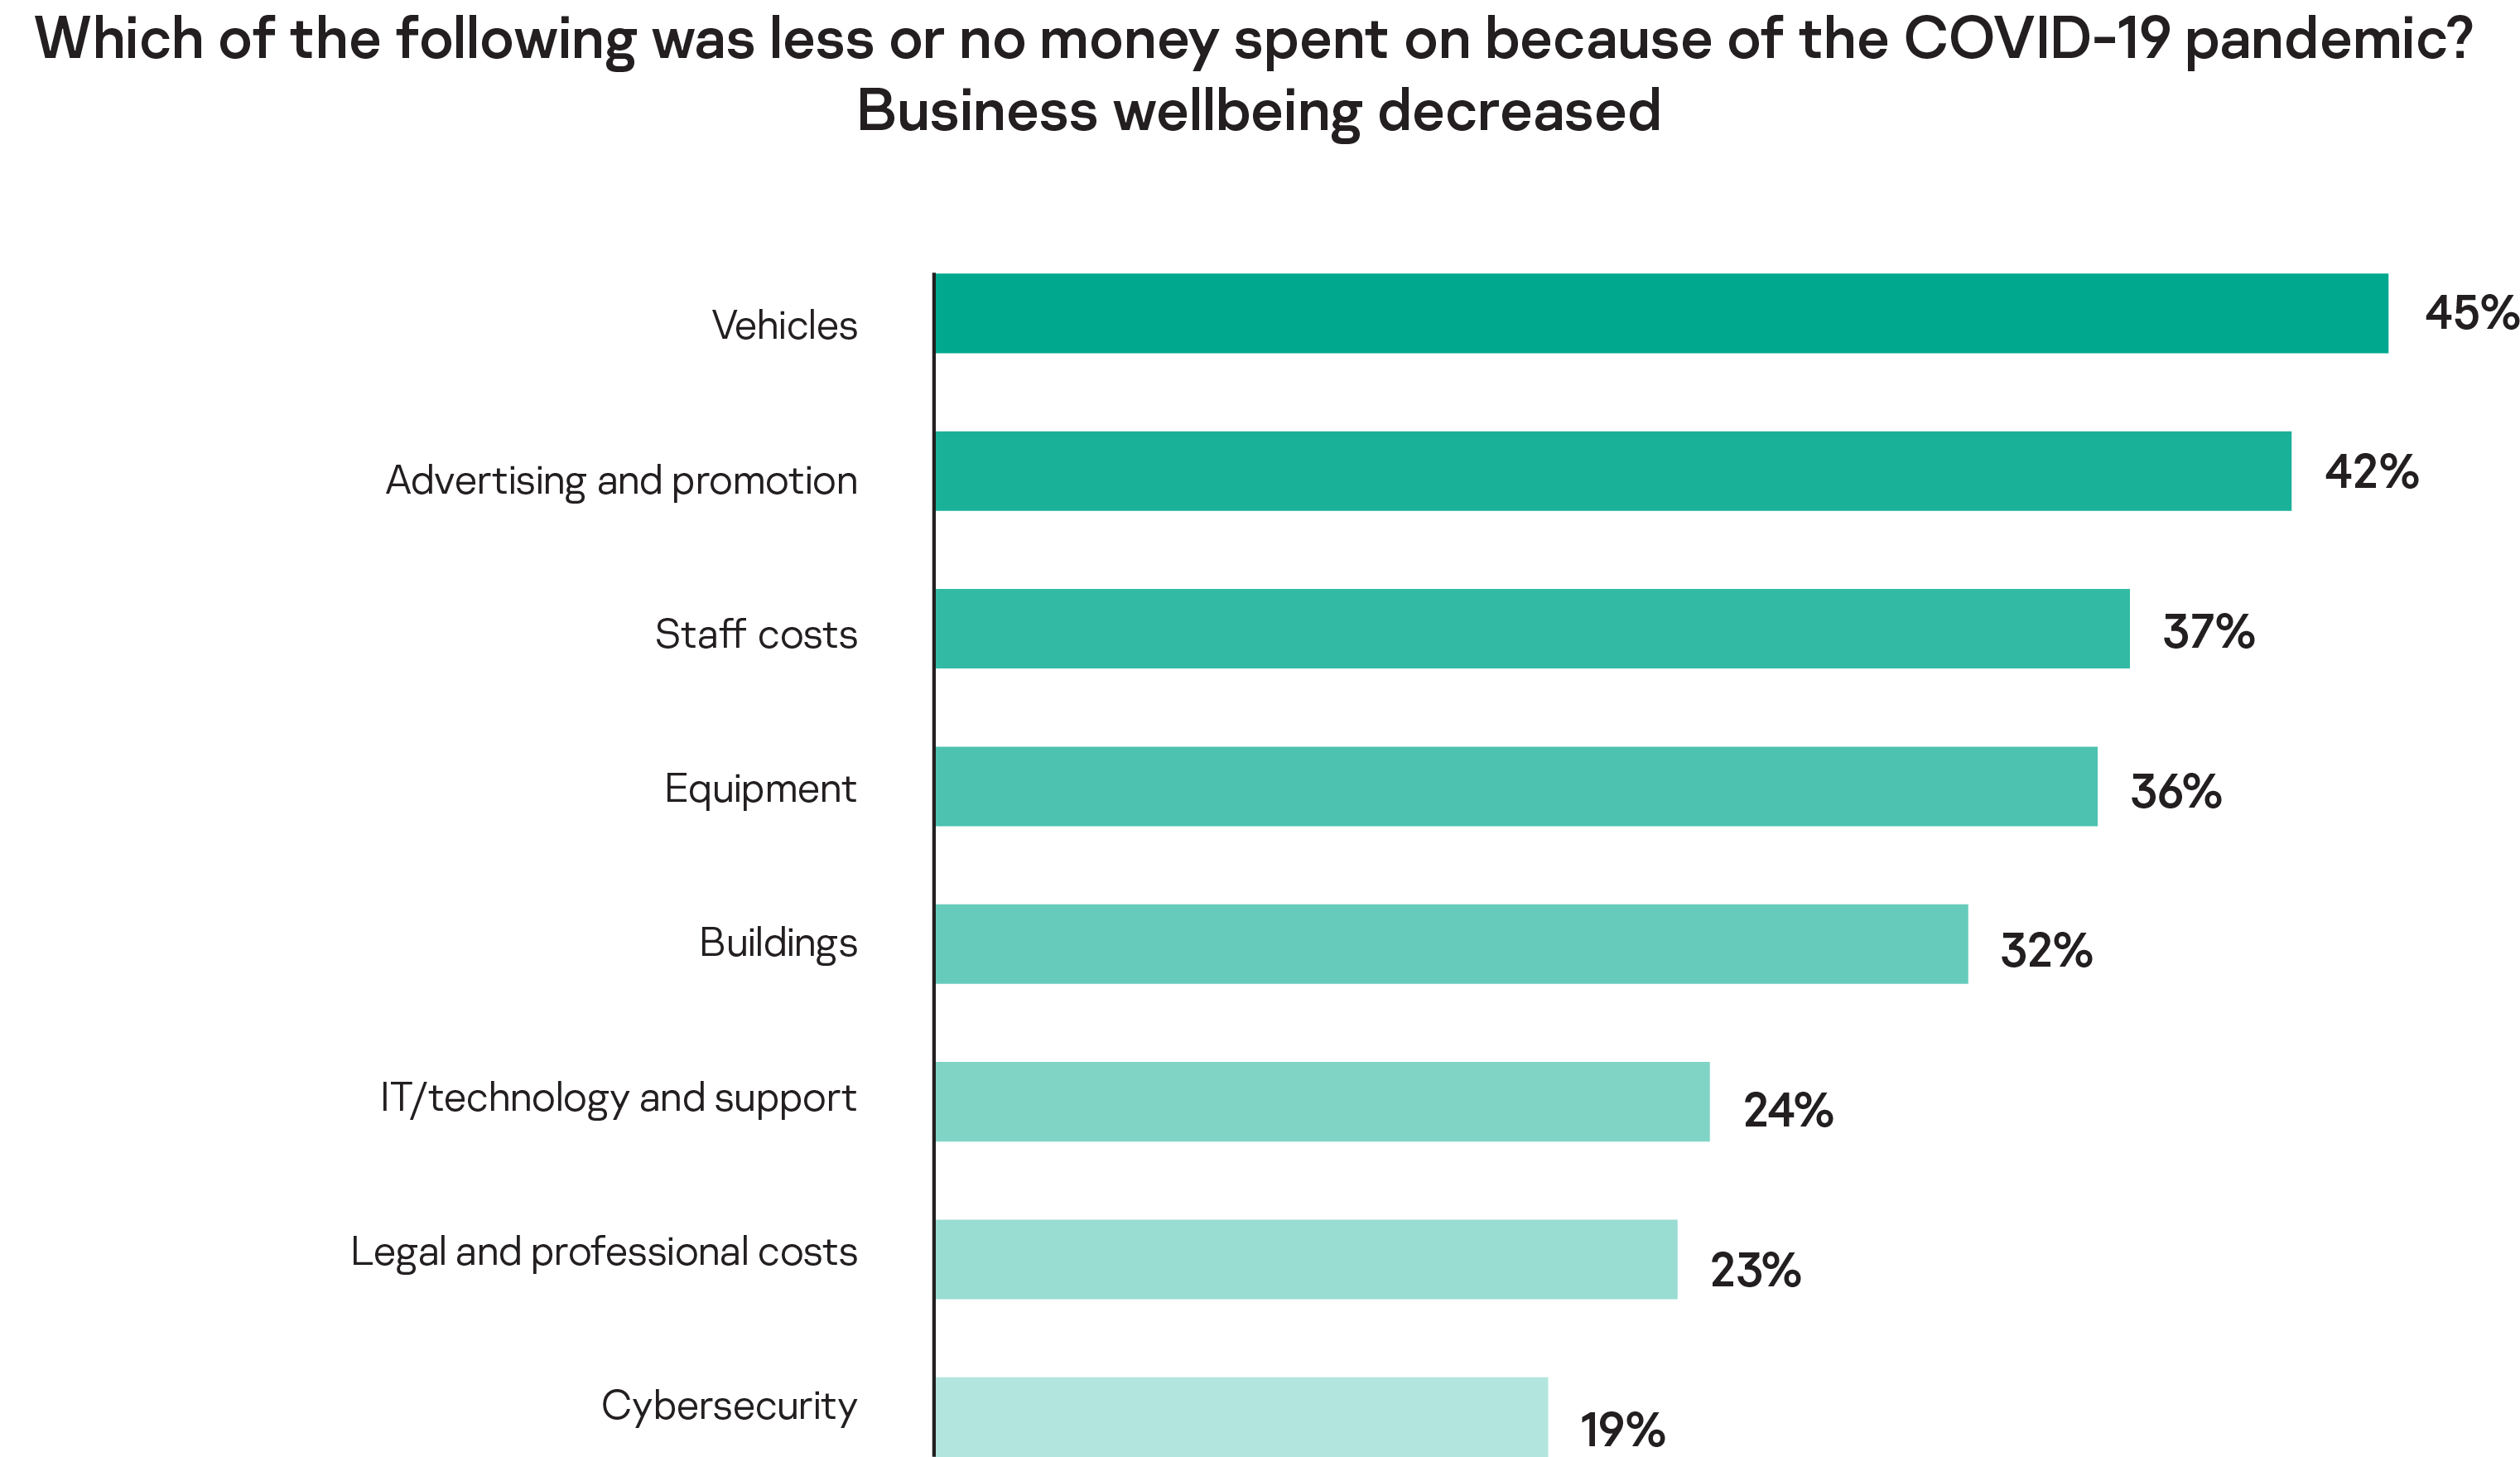 Which of the following was less or no money spent on because of the COVID-19 pandemic? Business wellbeing decreased